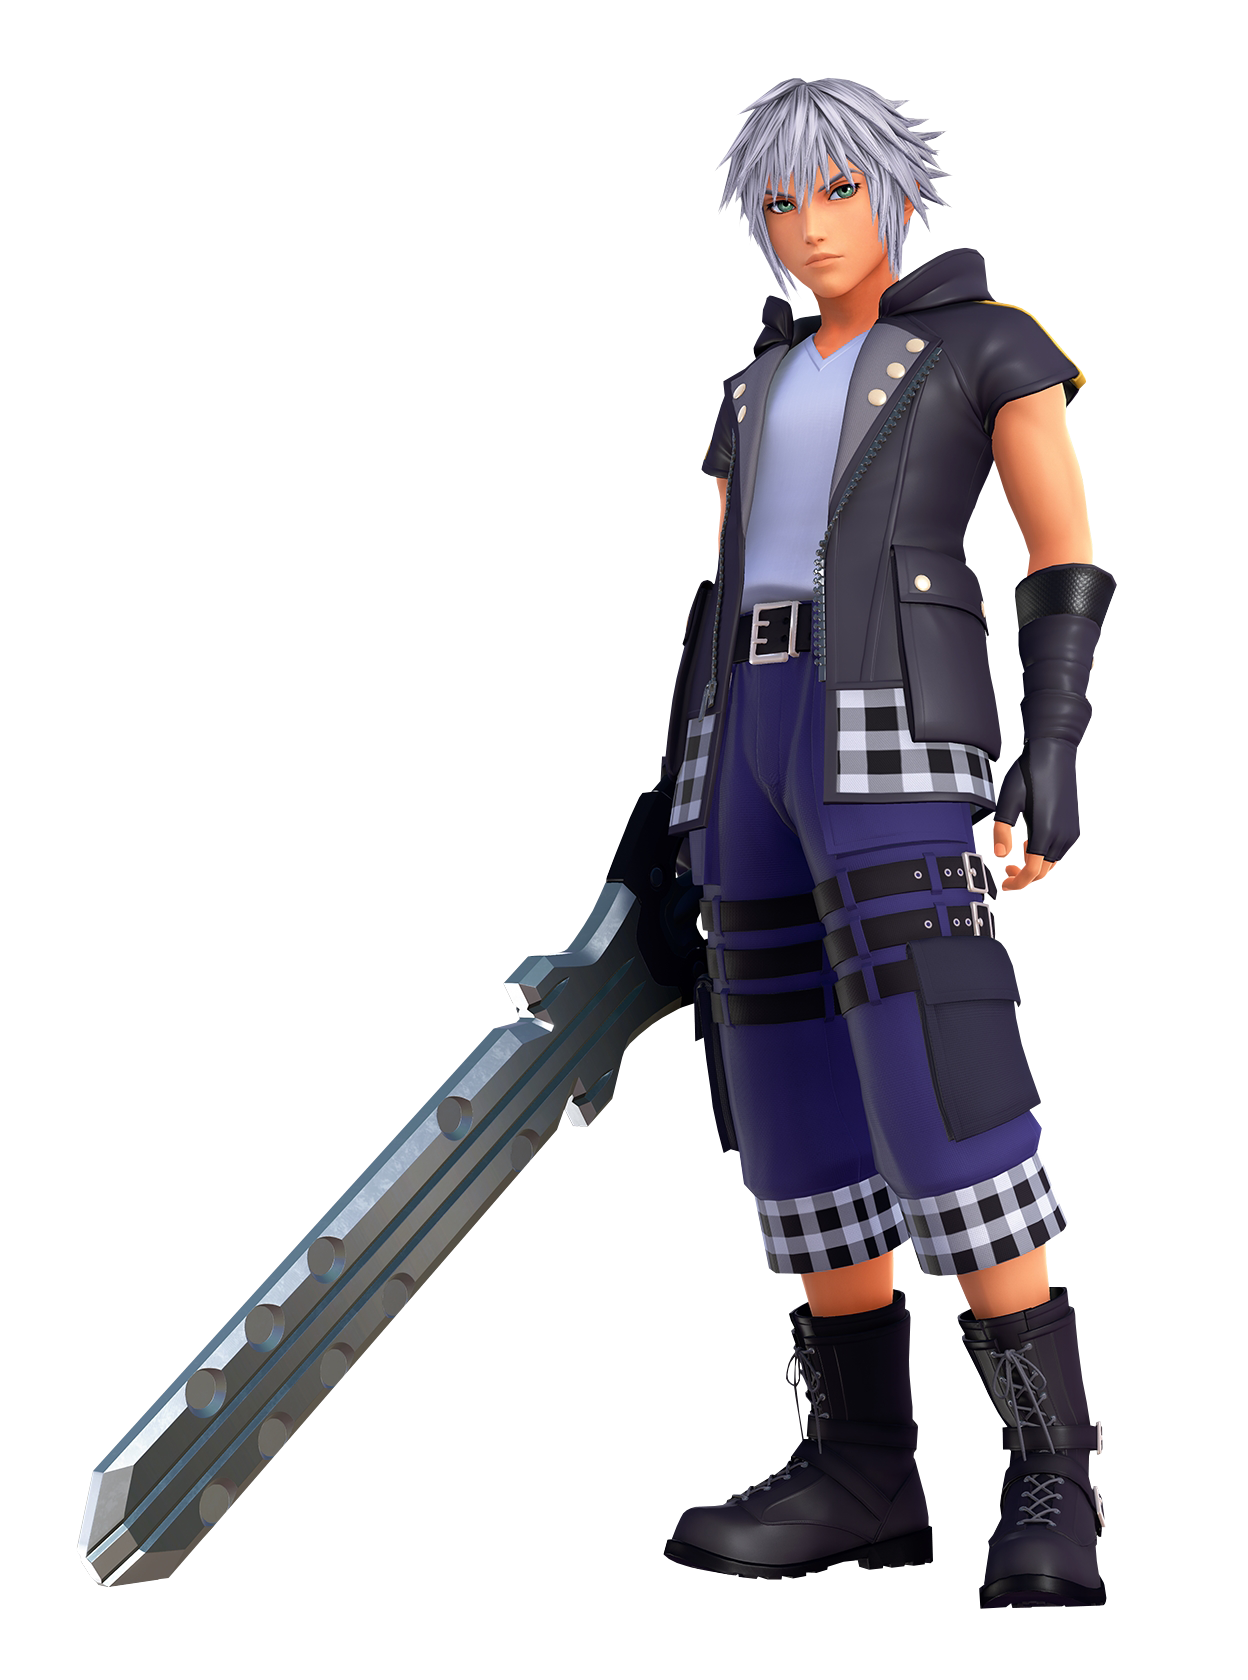 Kingdom hearts 3 png. New screenshots and renders